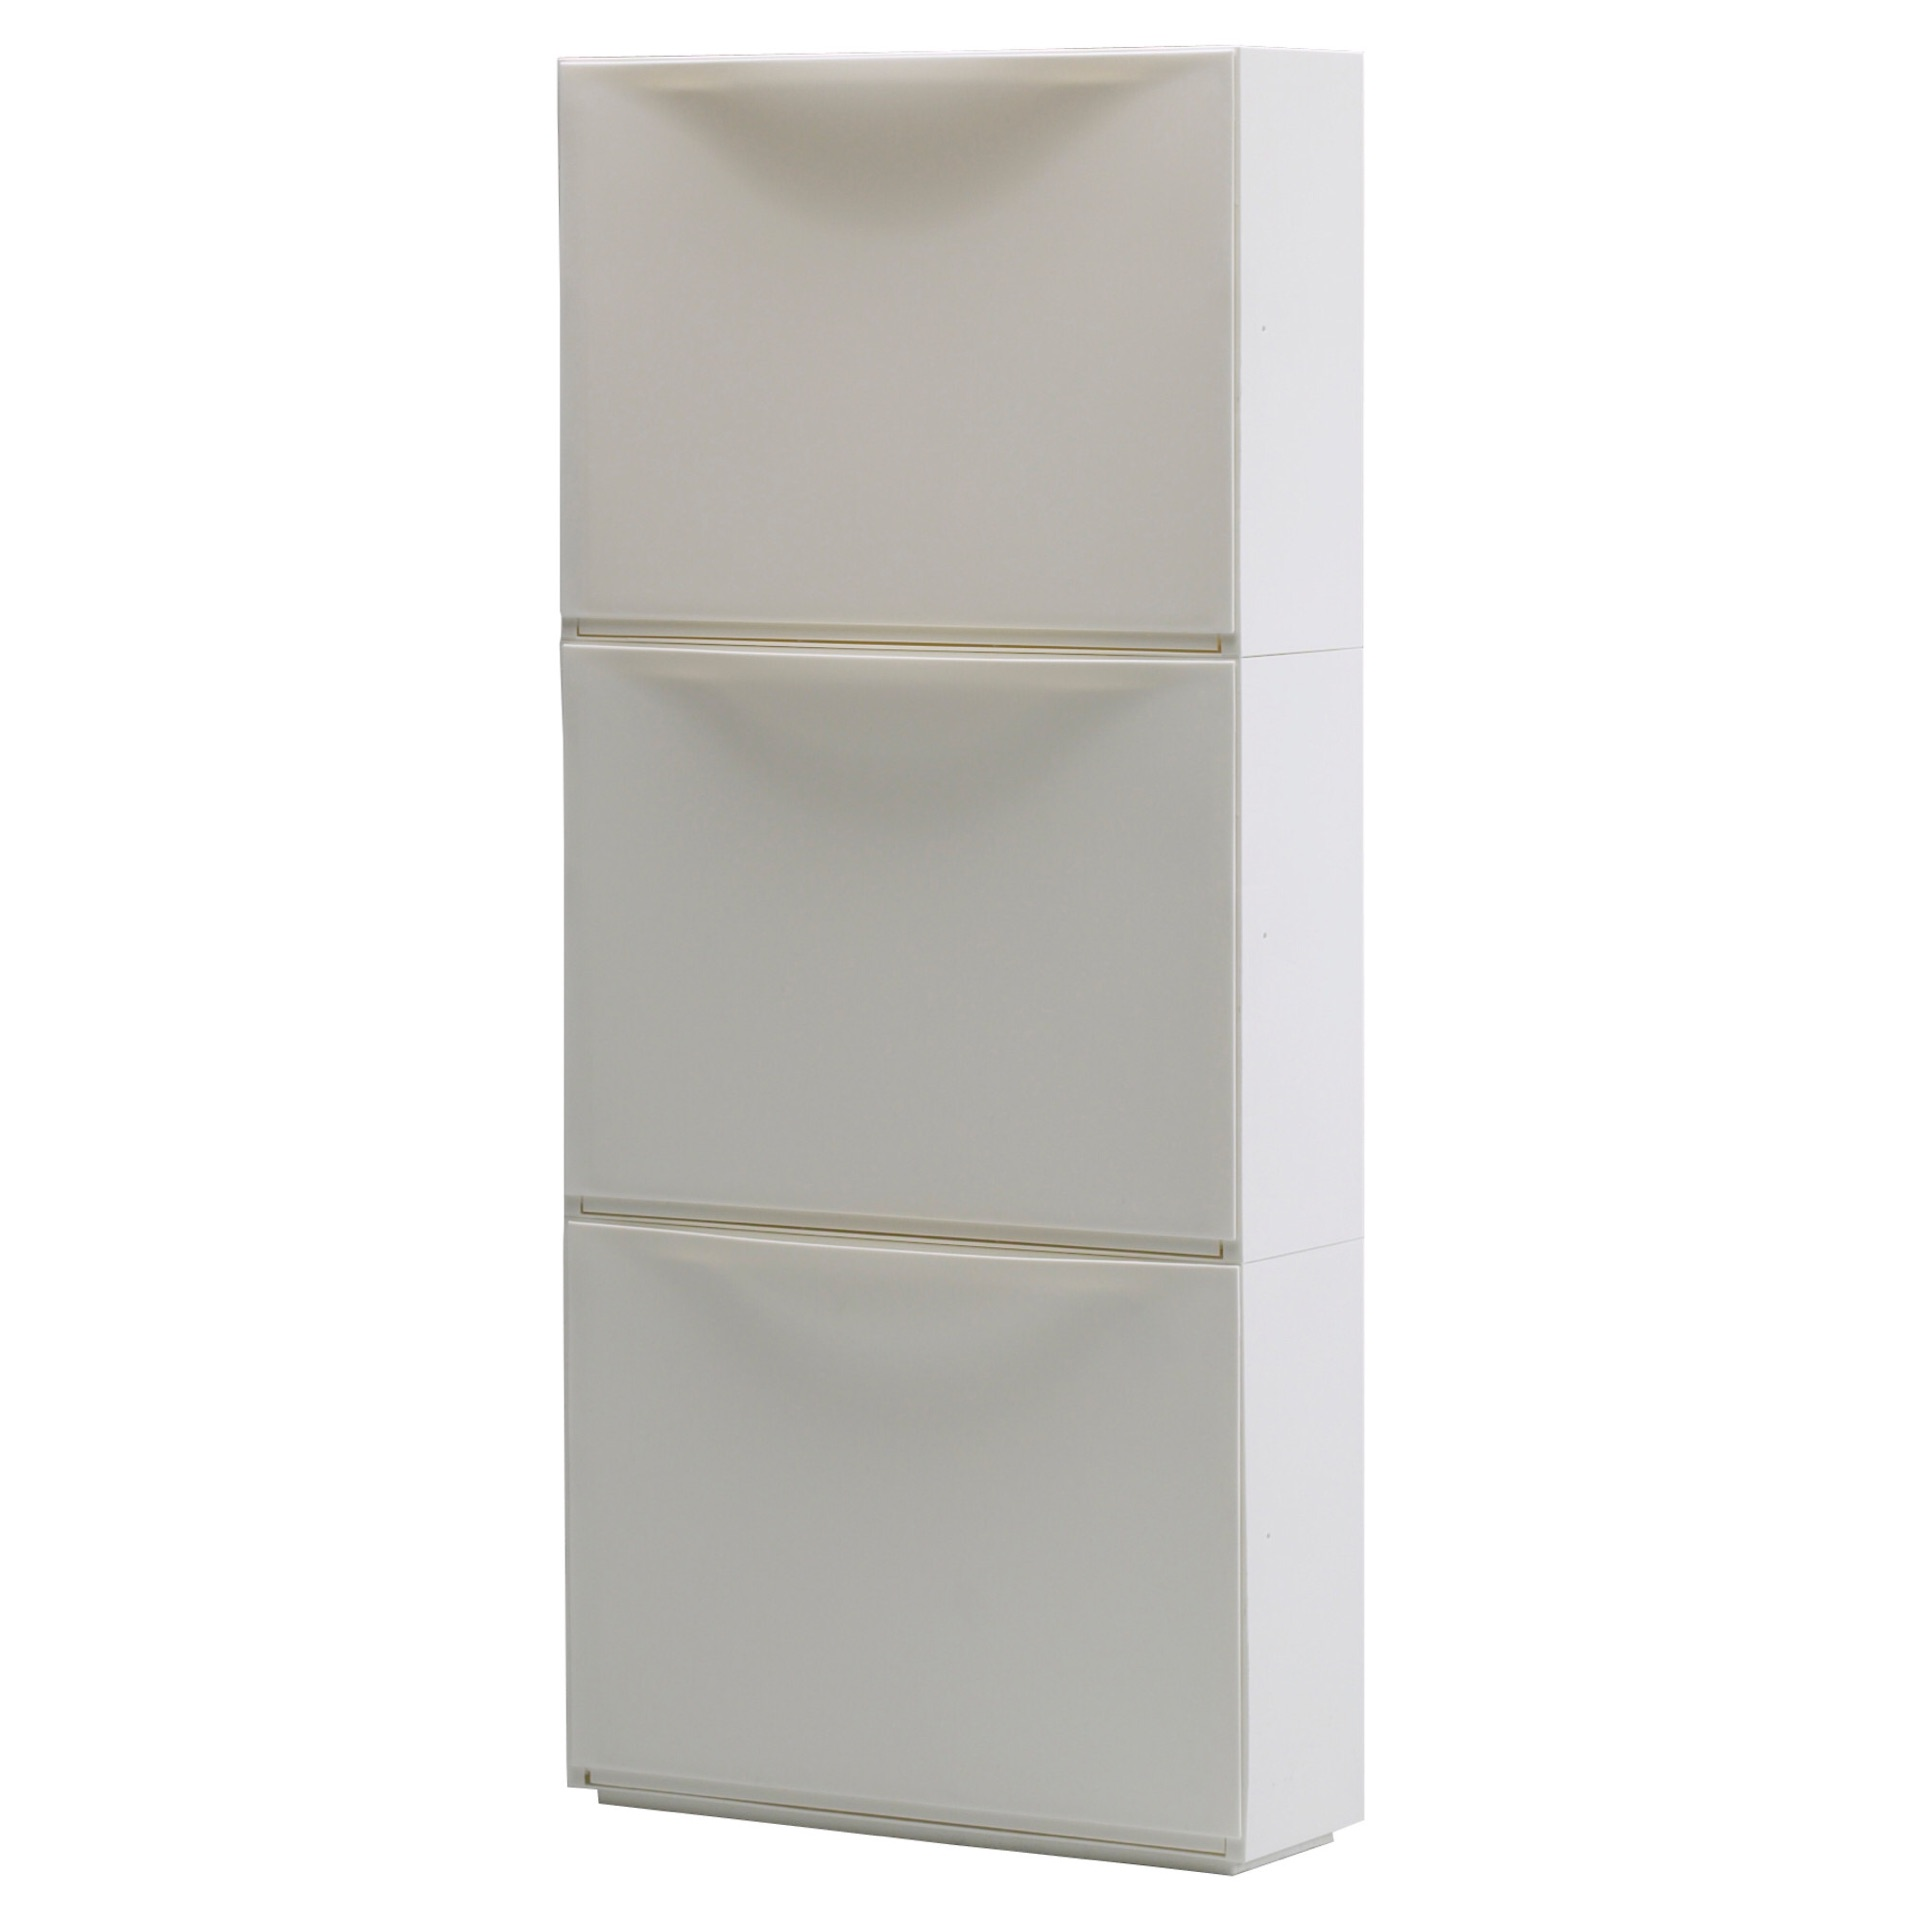 TRONES shoe/storage cabinets ($40 for a 3-pack)